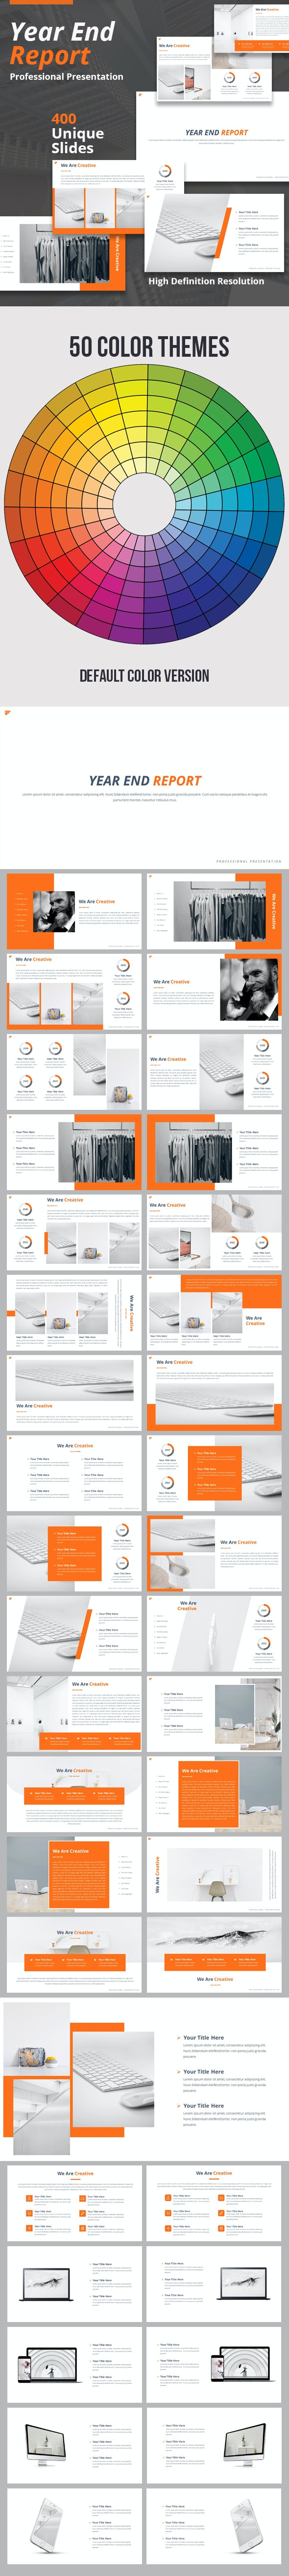 Year End Report Powerpoint Presentation Template By Loveishkalsi Graphicriver